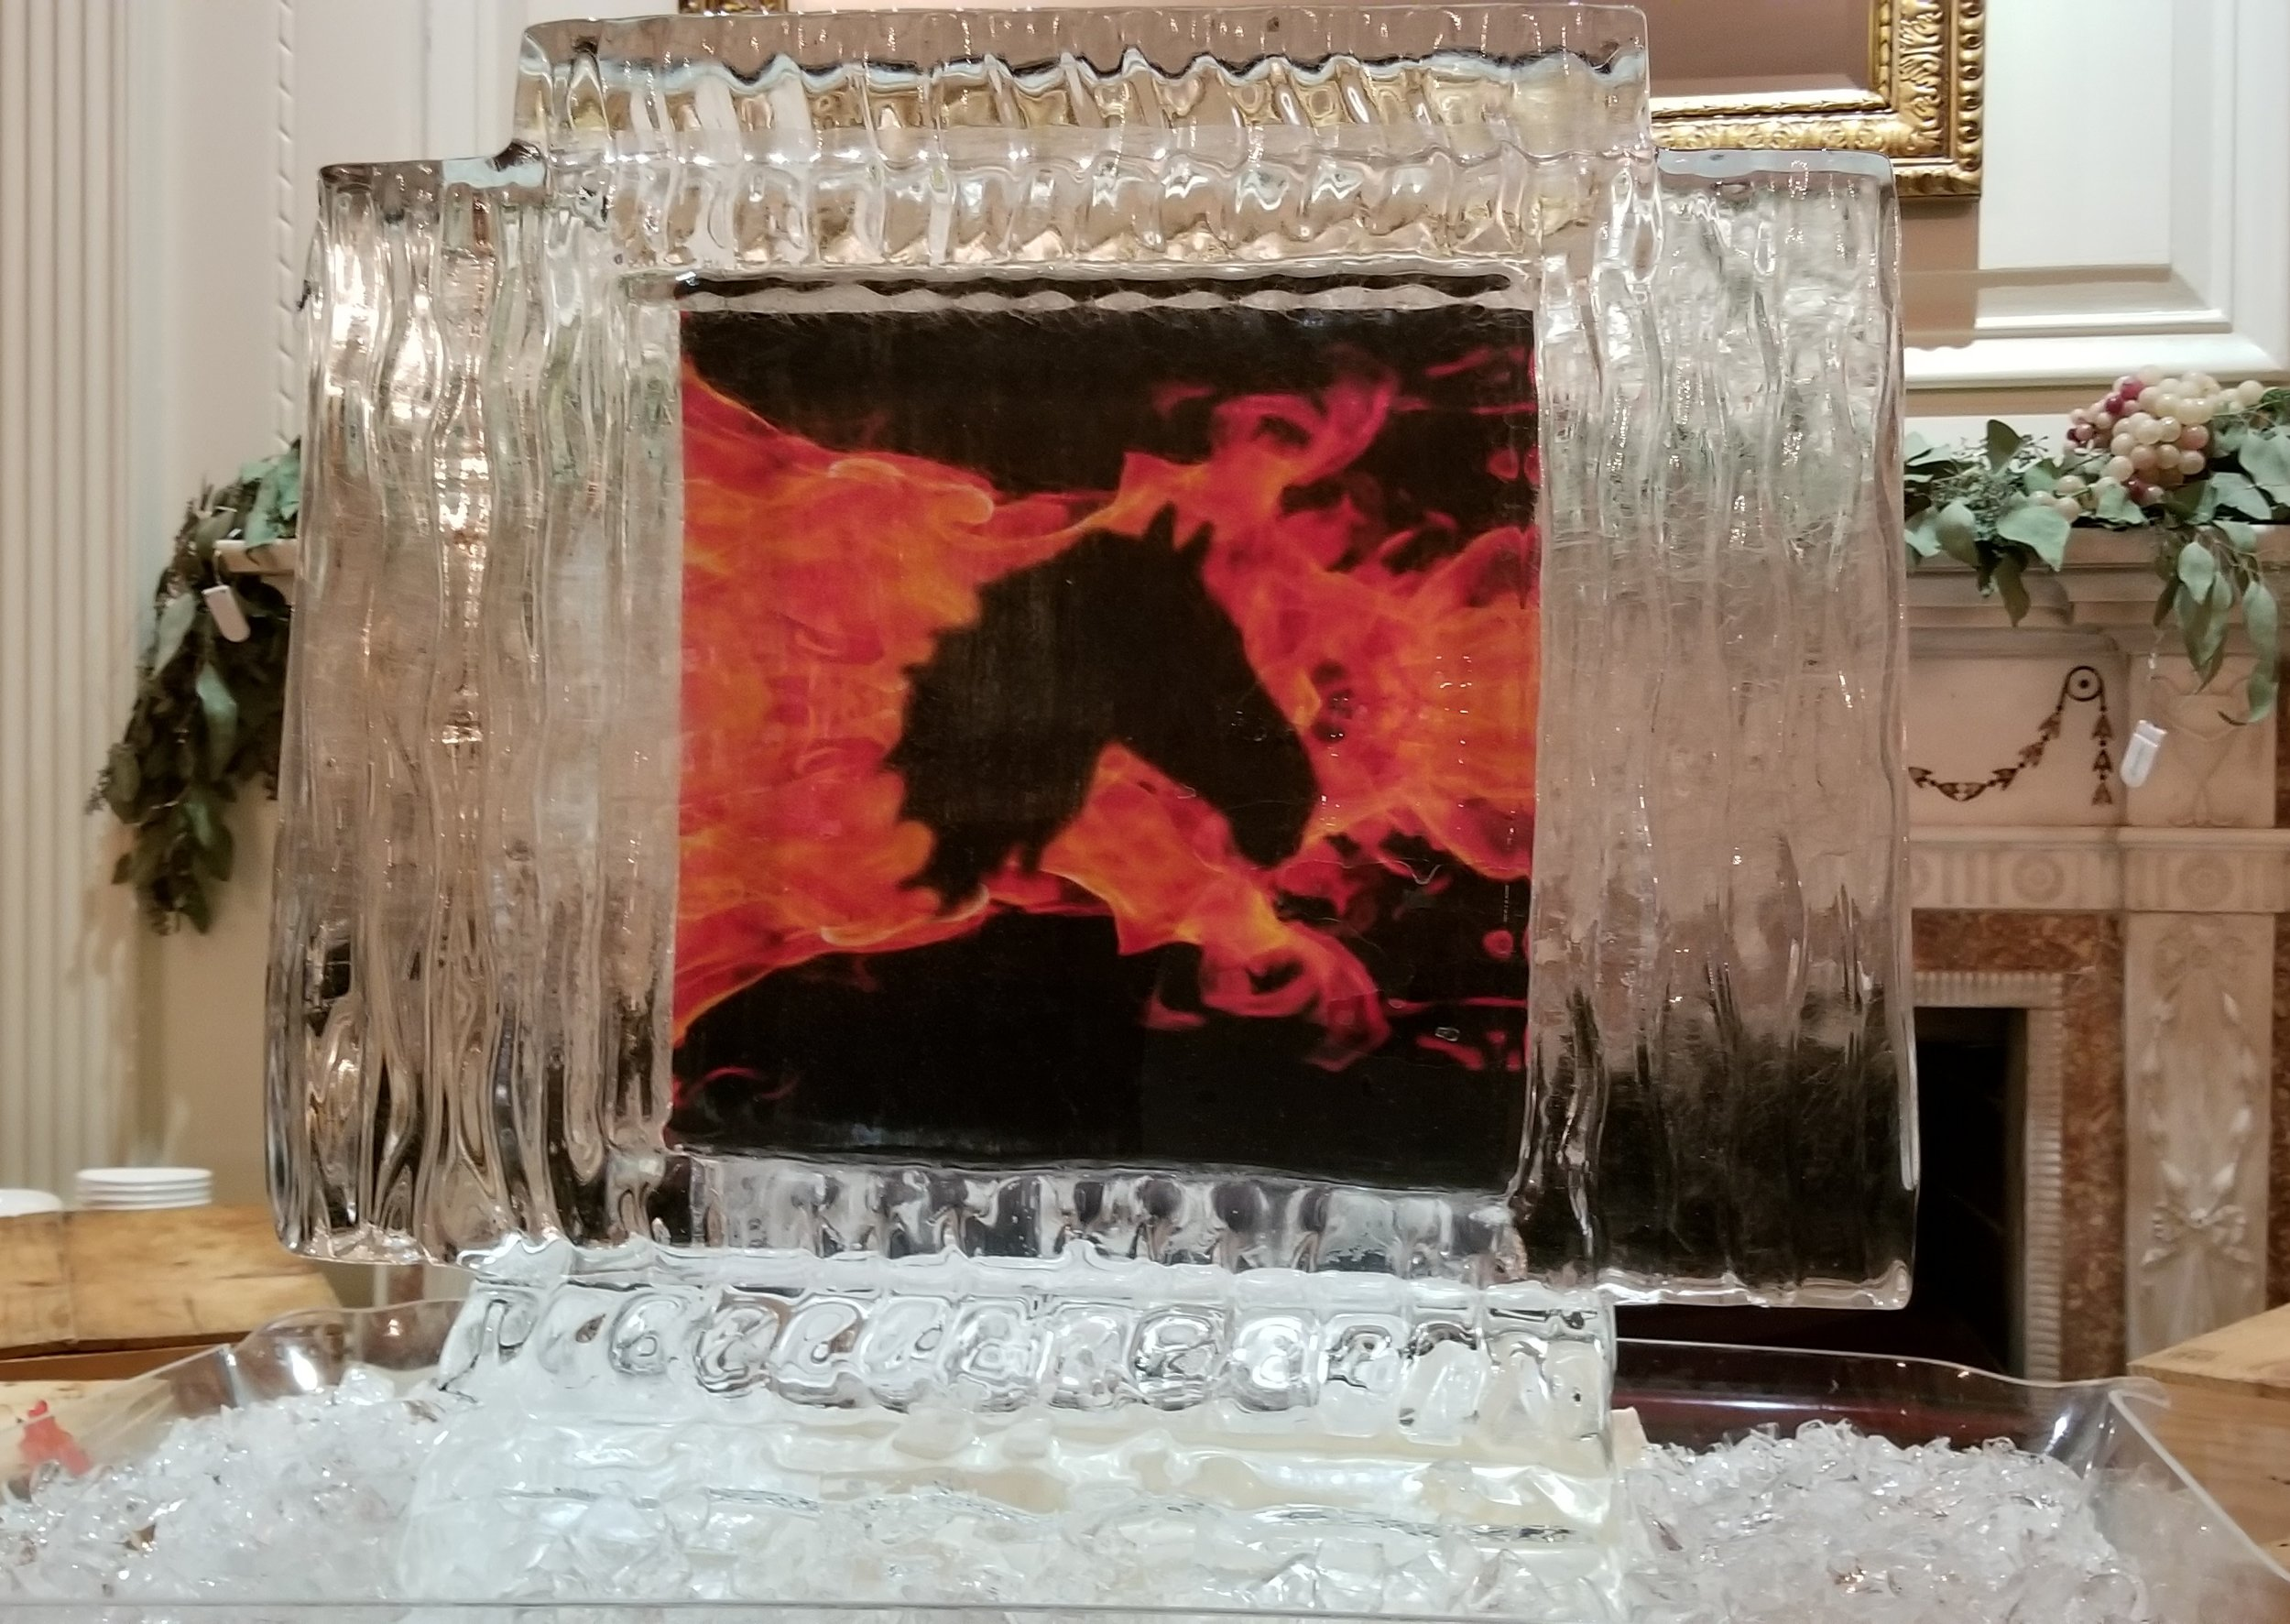 Fire & Ice Sculpture.jpg